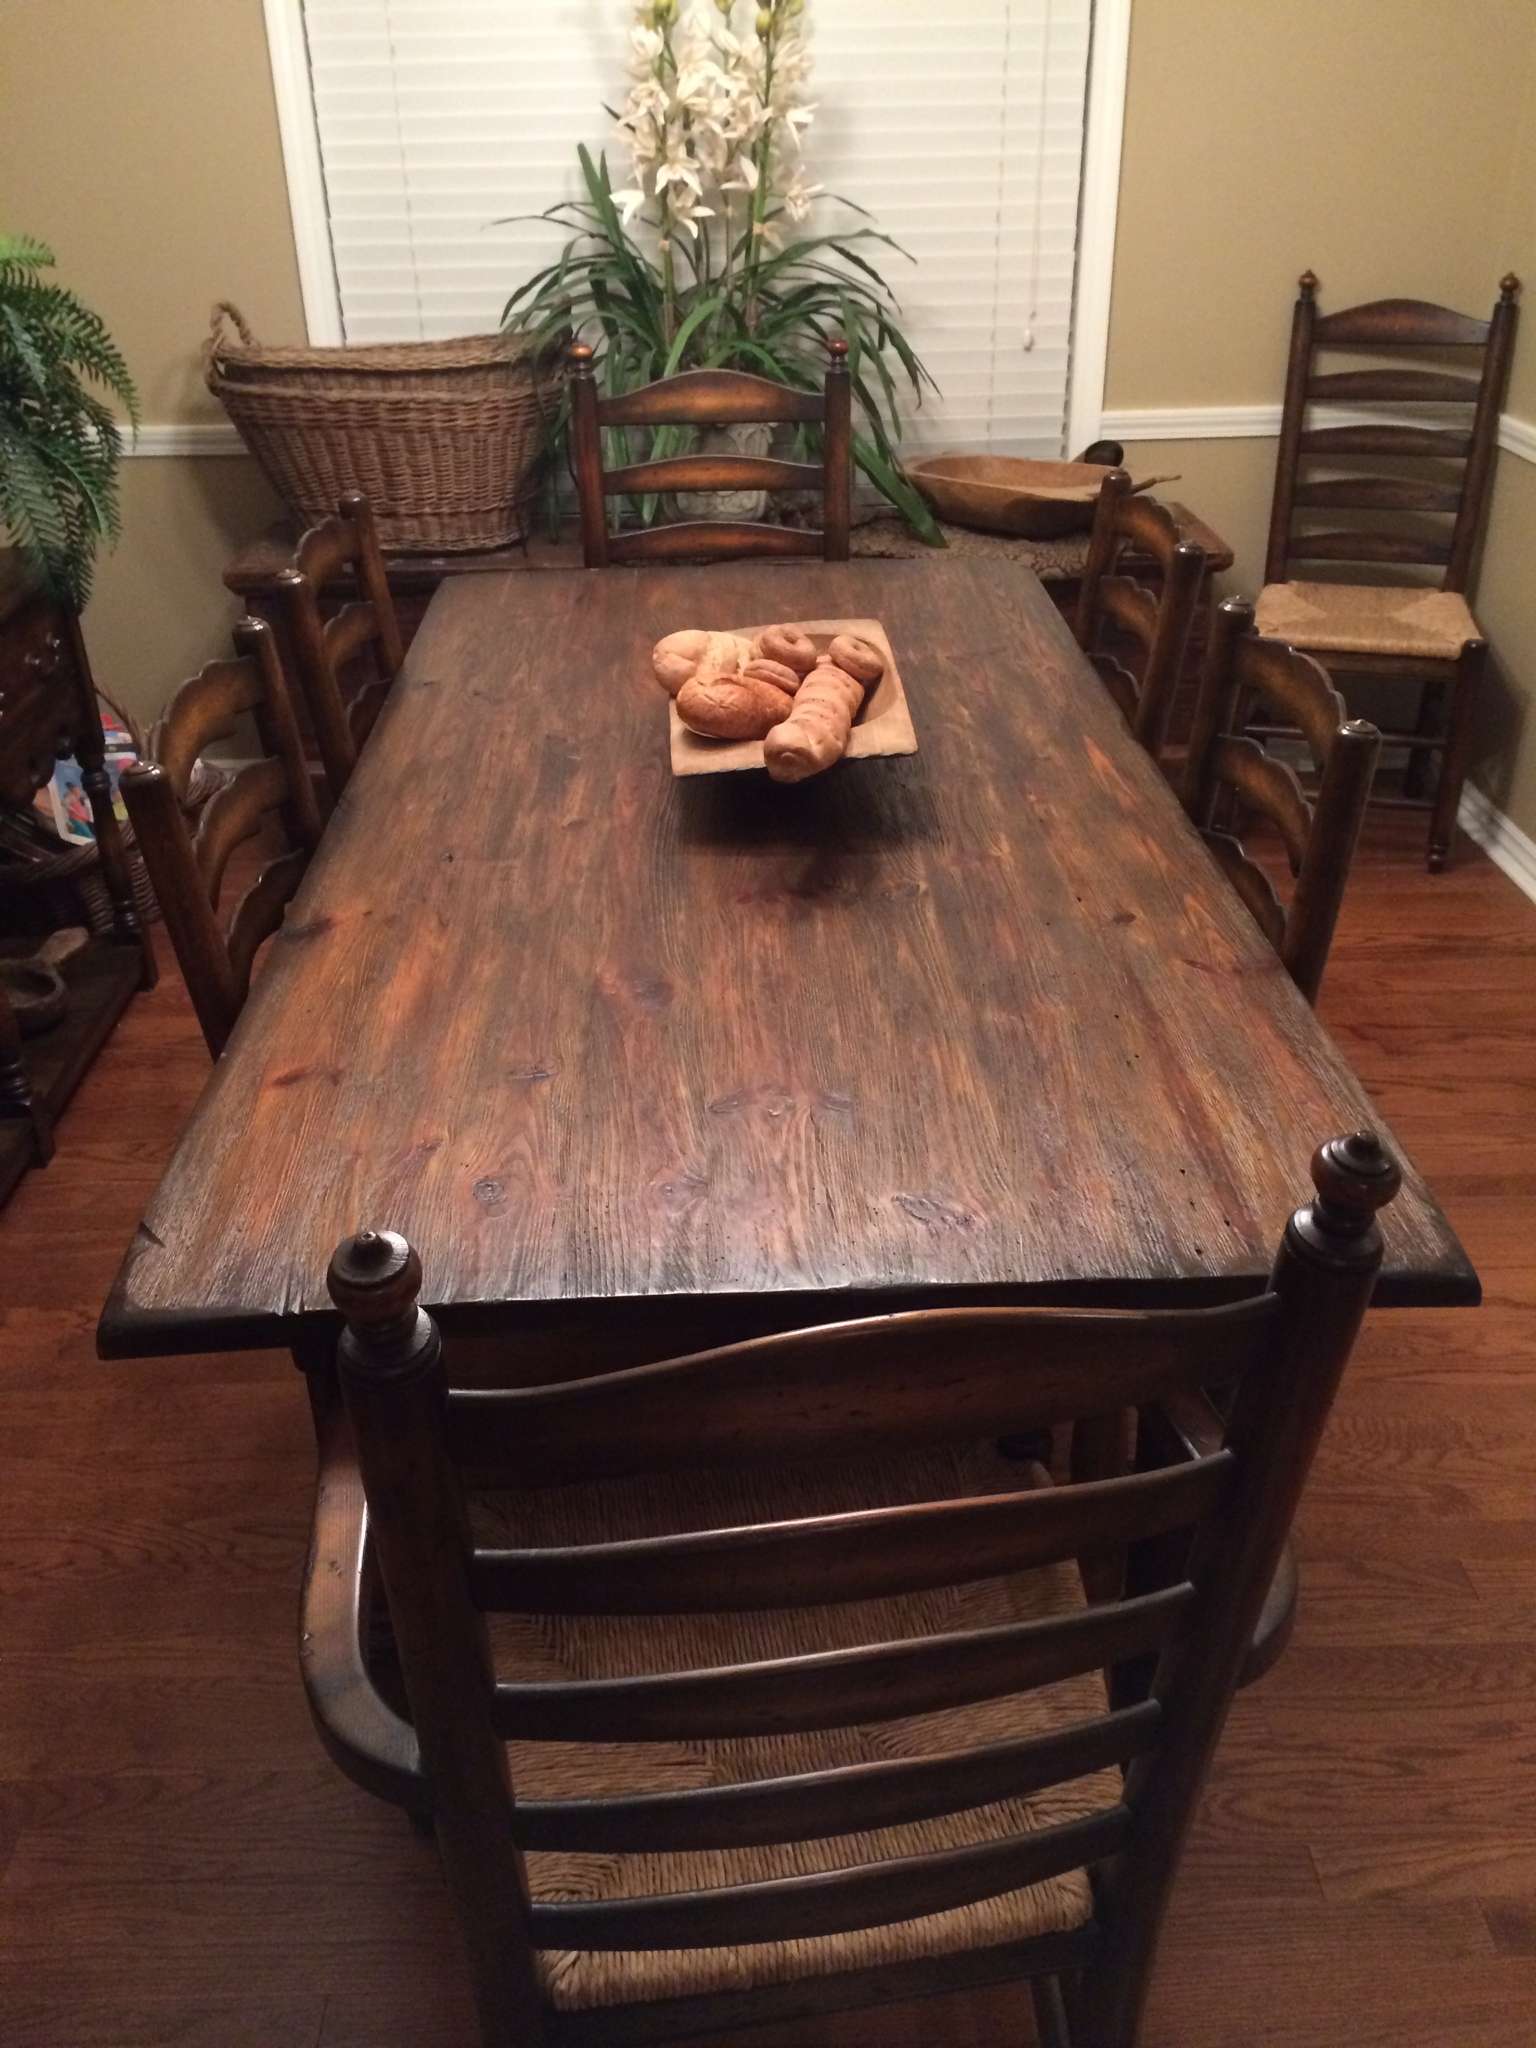 Customer Install Rock Sanded Table and Chairs